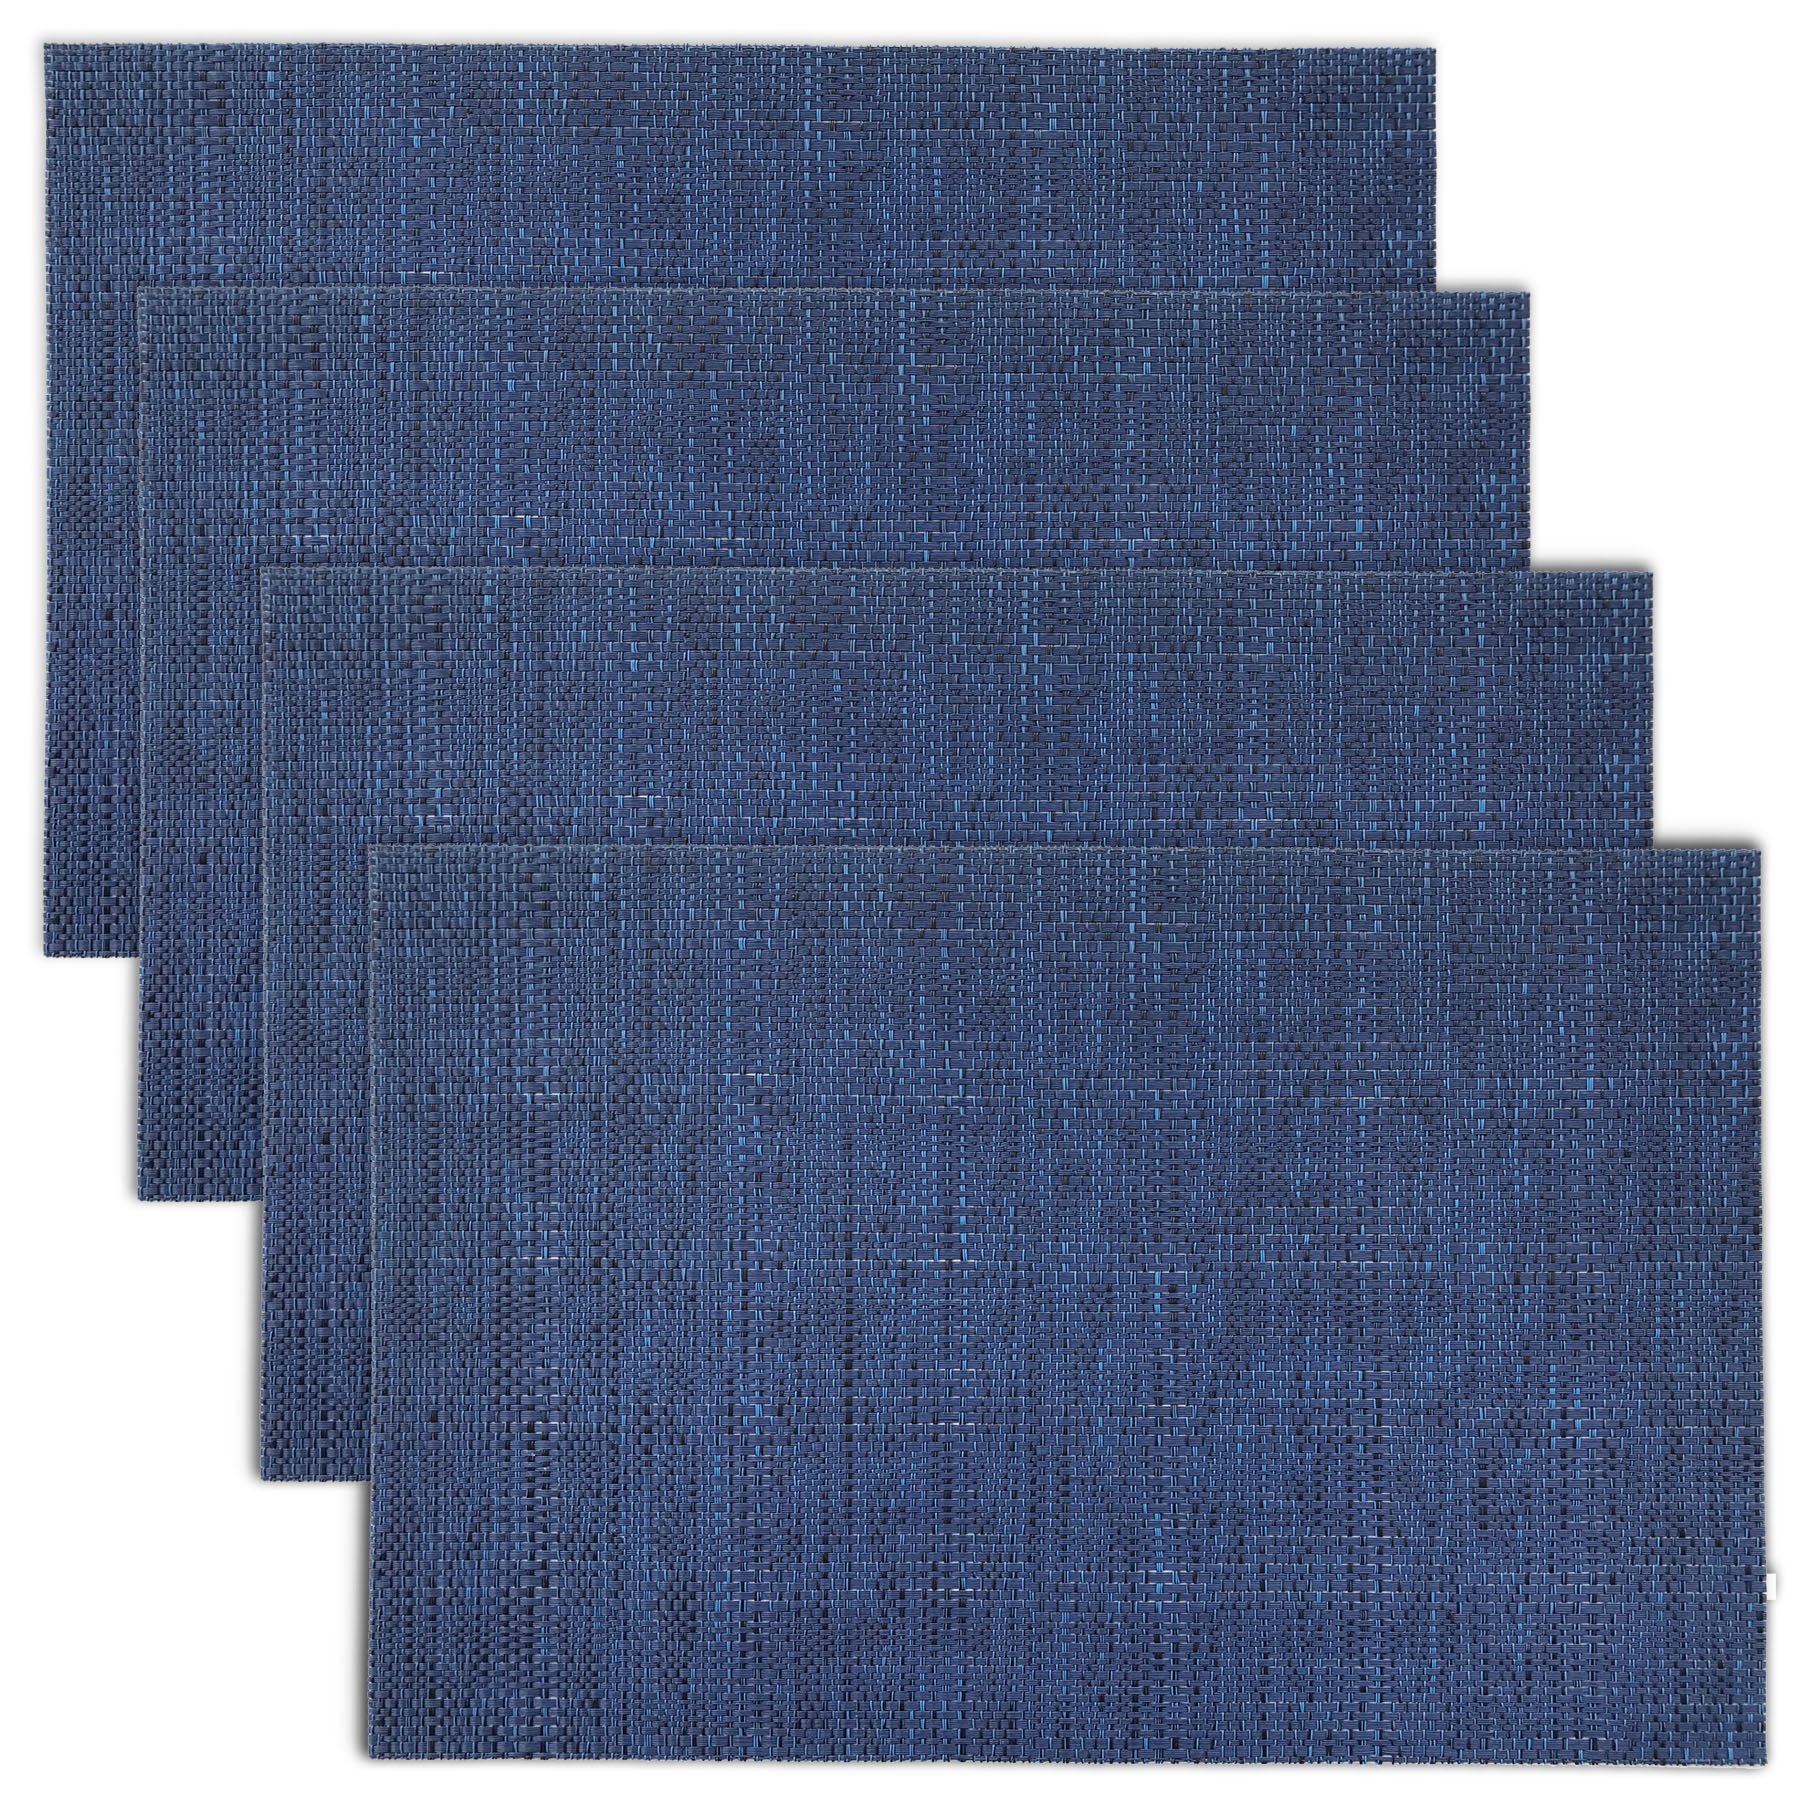 Texture Design Woven PVC Placemat (Navy), Set of 4